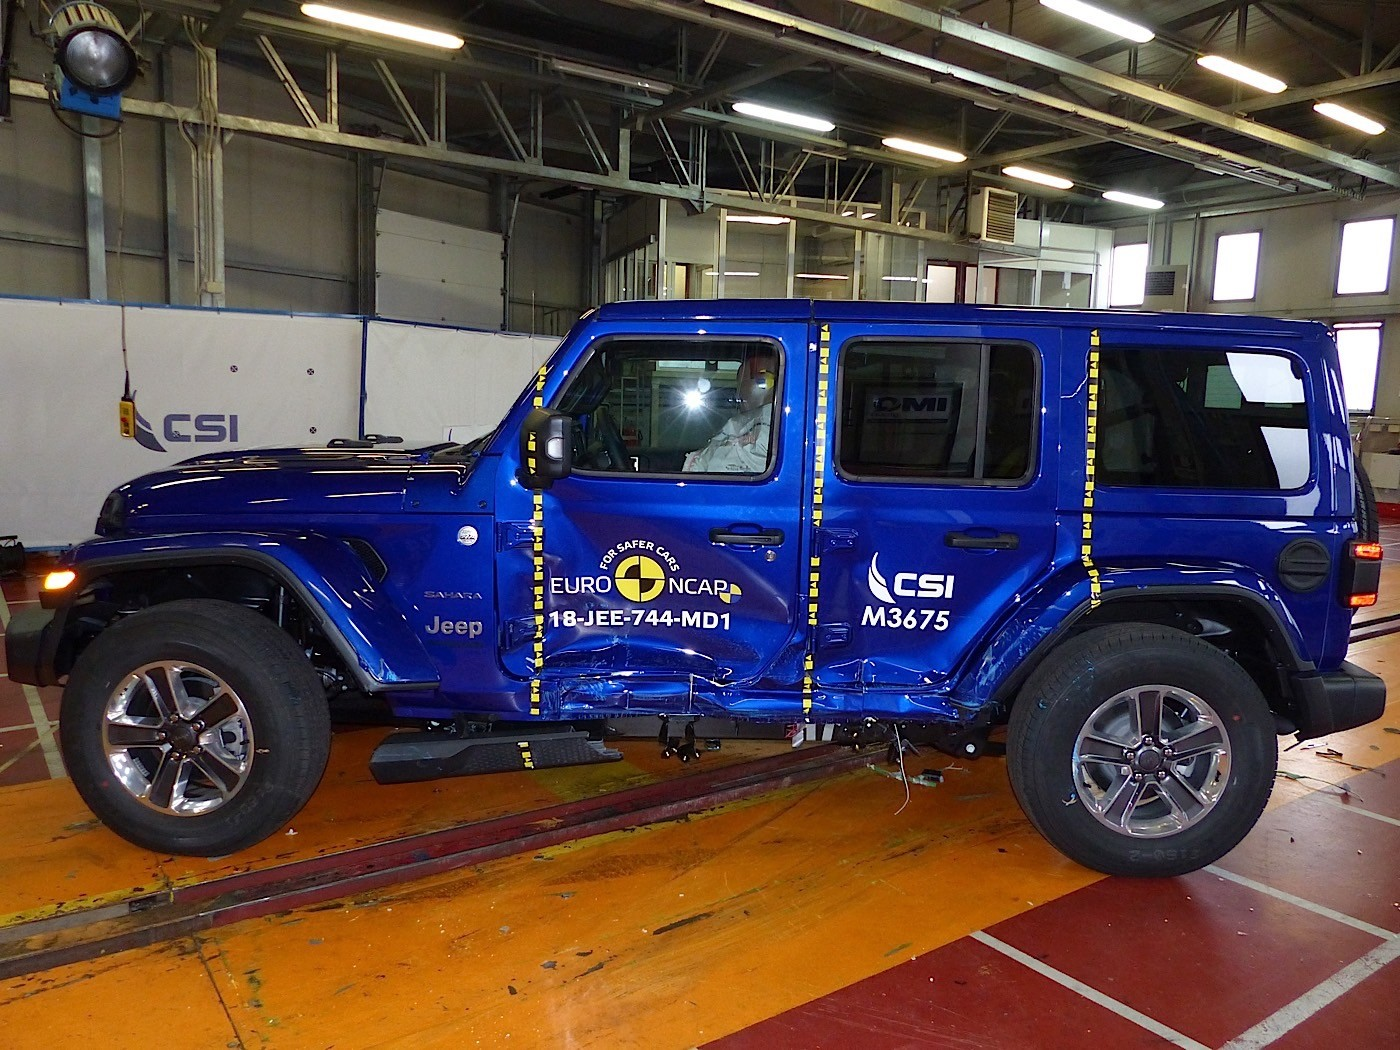 New Jeep Wrangler Disappoints With 1 Star In Europe NCAP Crash Tests